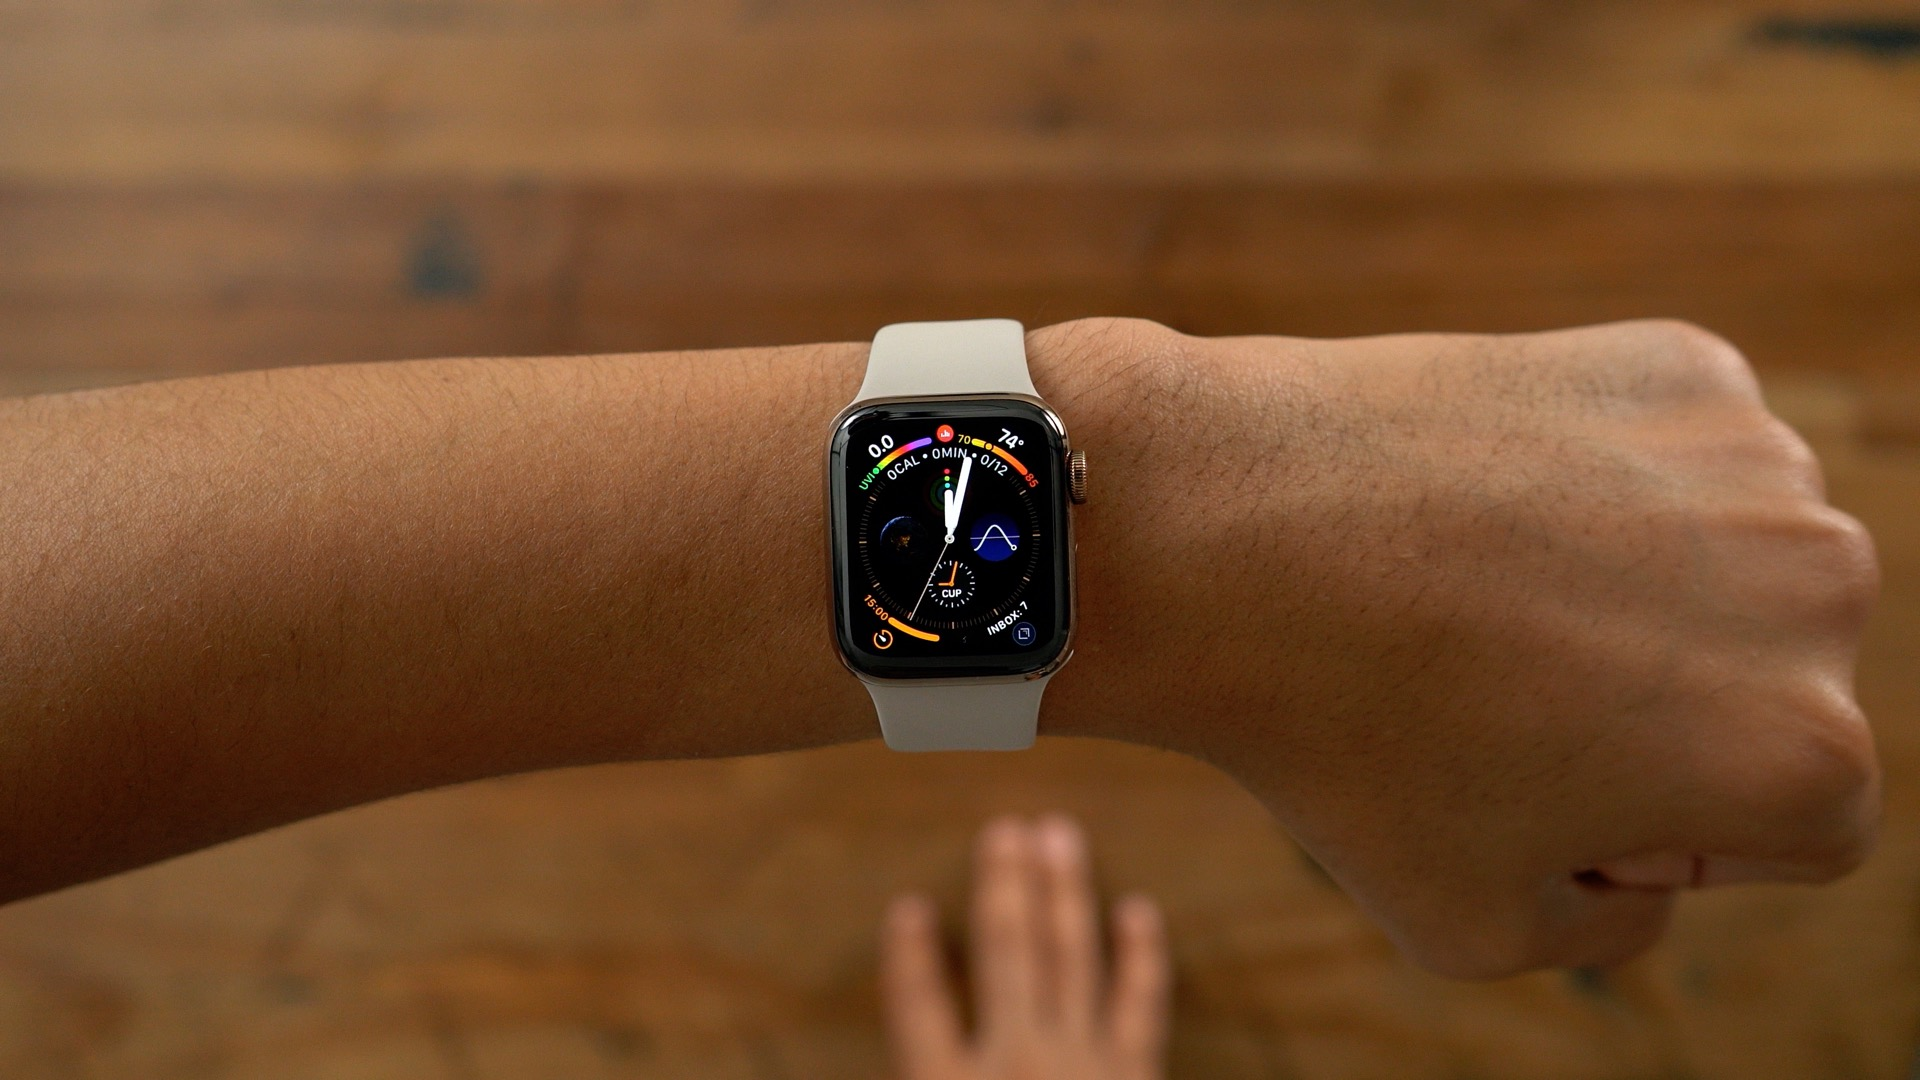 Second iOS 12.1.1 and first watchOS 5.1.2 betas coming today, likely unlock new Apple Watch Series 4 complications